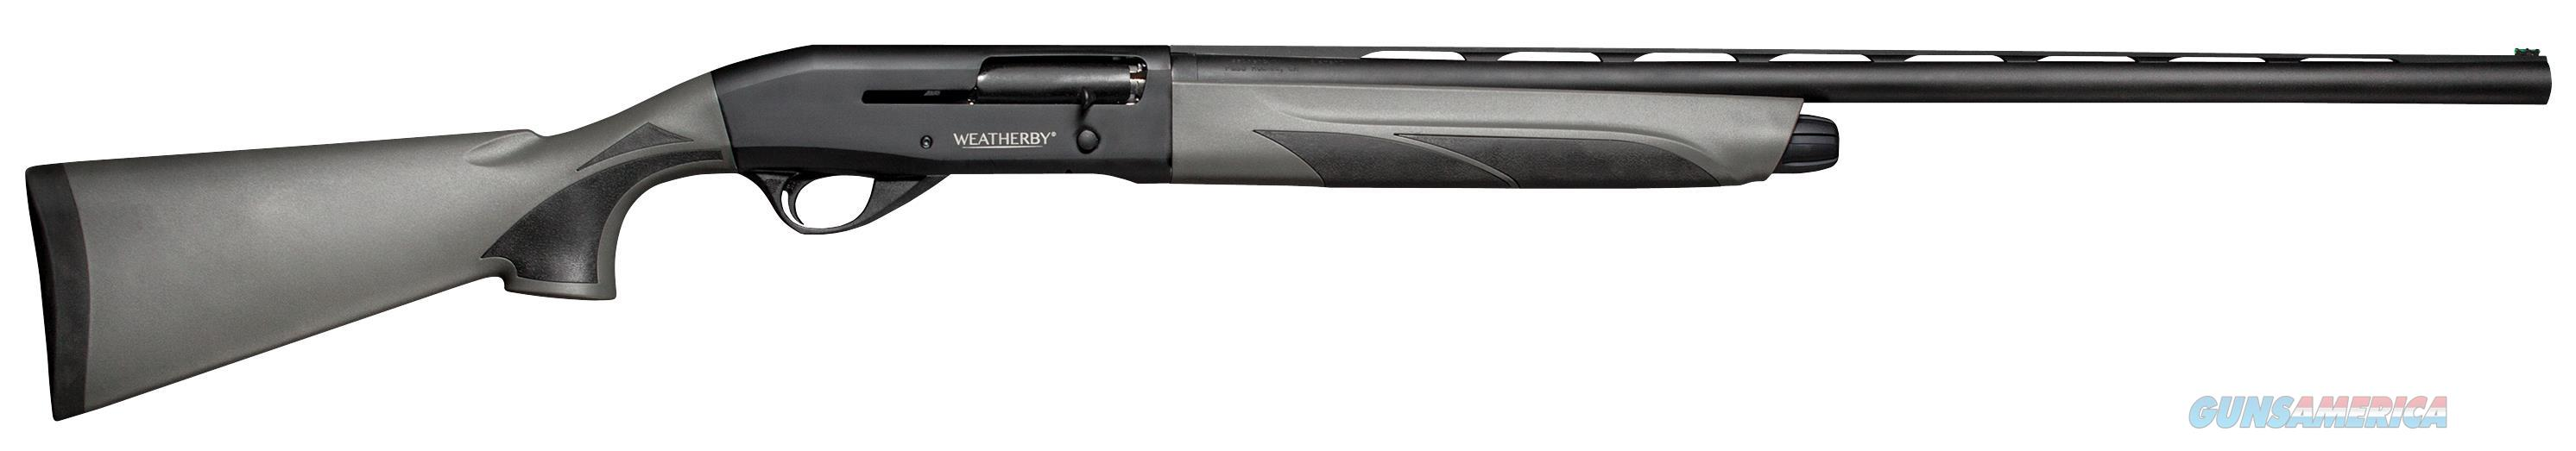 "Weatherby Esn1226pgm Element Semi-Automatic 12Ga 26"" 3"" Gray Synthetic Stk Blk ESN1226PGM  Guns > Shotguns > W Misc Shotguns"